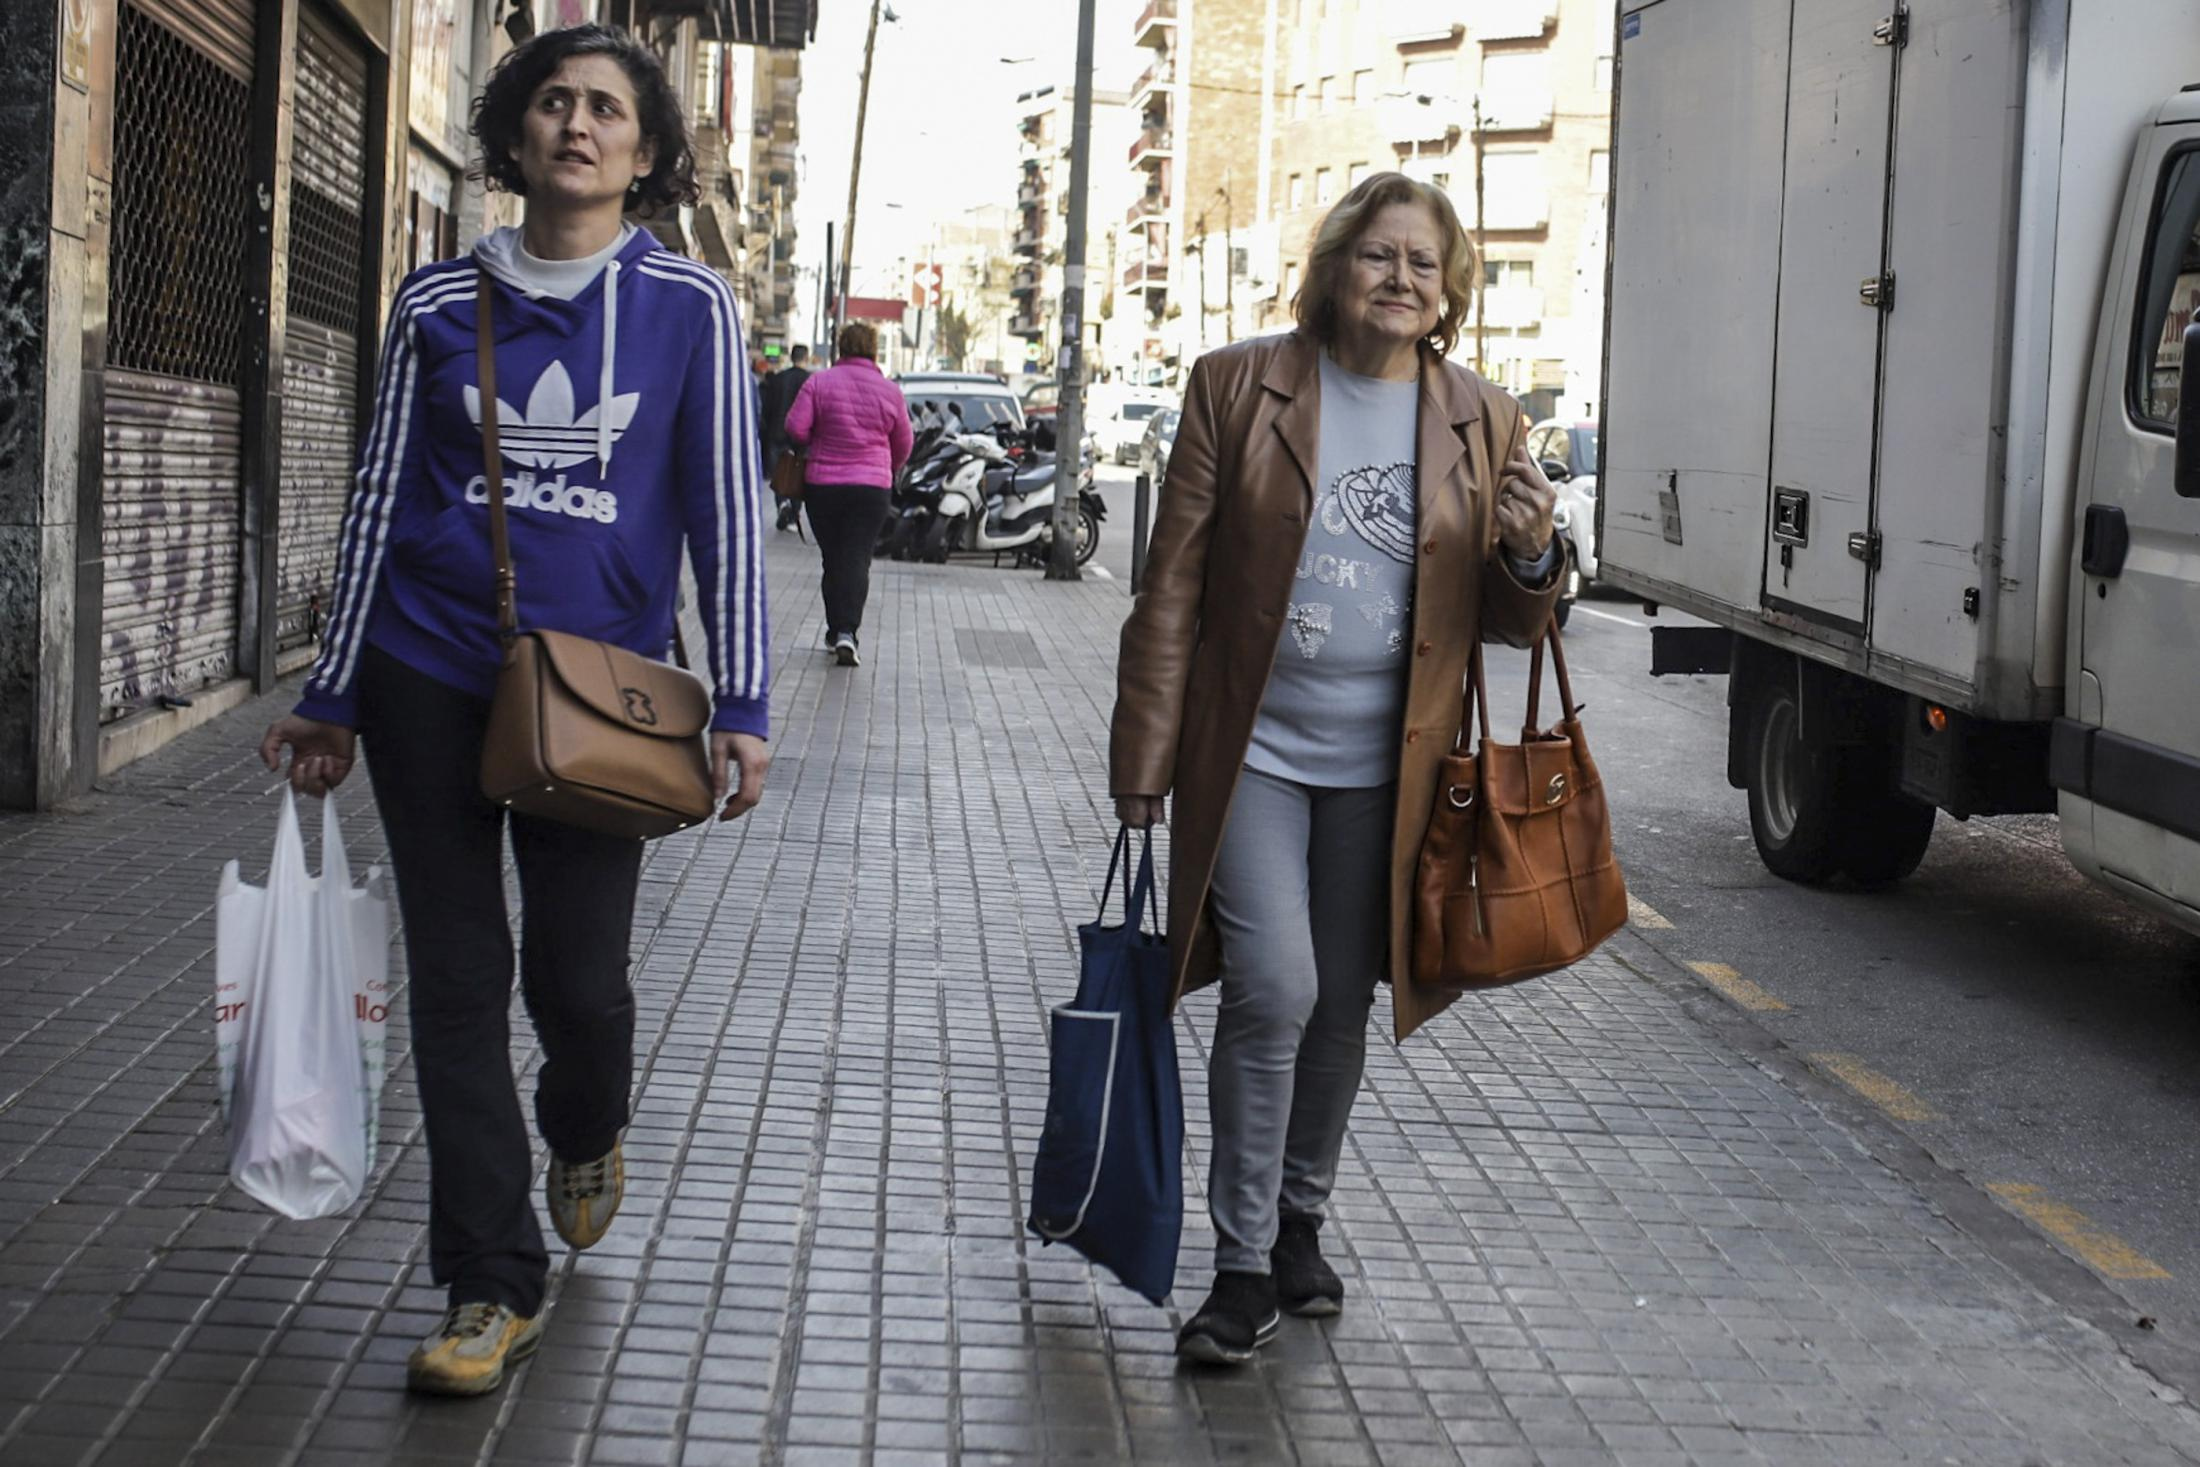 March 12, 2019 - Barcelona, Spain: Coronavirus in Barcelona. Barcelona stores sell and offer coronavirus protection masks after the number of patients with the virus increased in number.